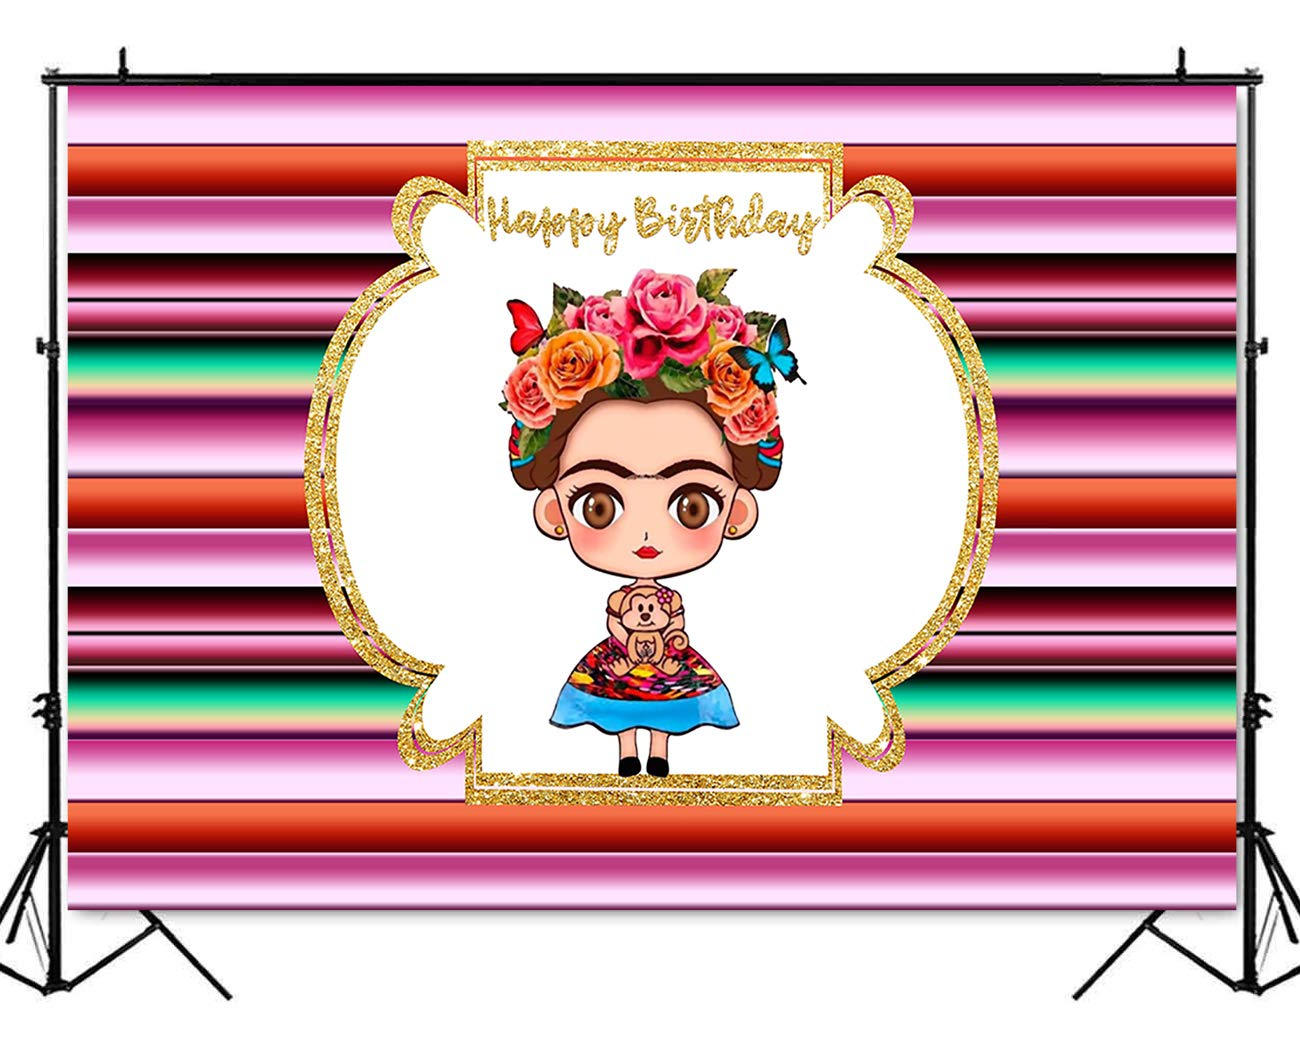 Baby frida kahlo clipart clip art free library Mehofoto Frida Kahlo Mexican Backdrop Mexican Theme Birthday Party  Background 7x5ft Vinyl Mexican Girl Birthday Party Banner Decoration  Backdrops clip art free library